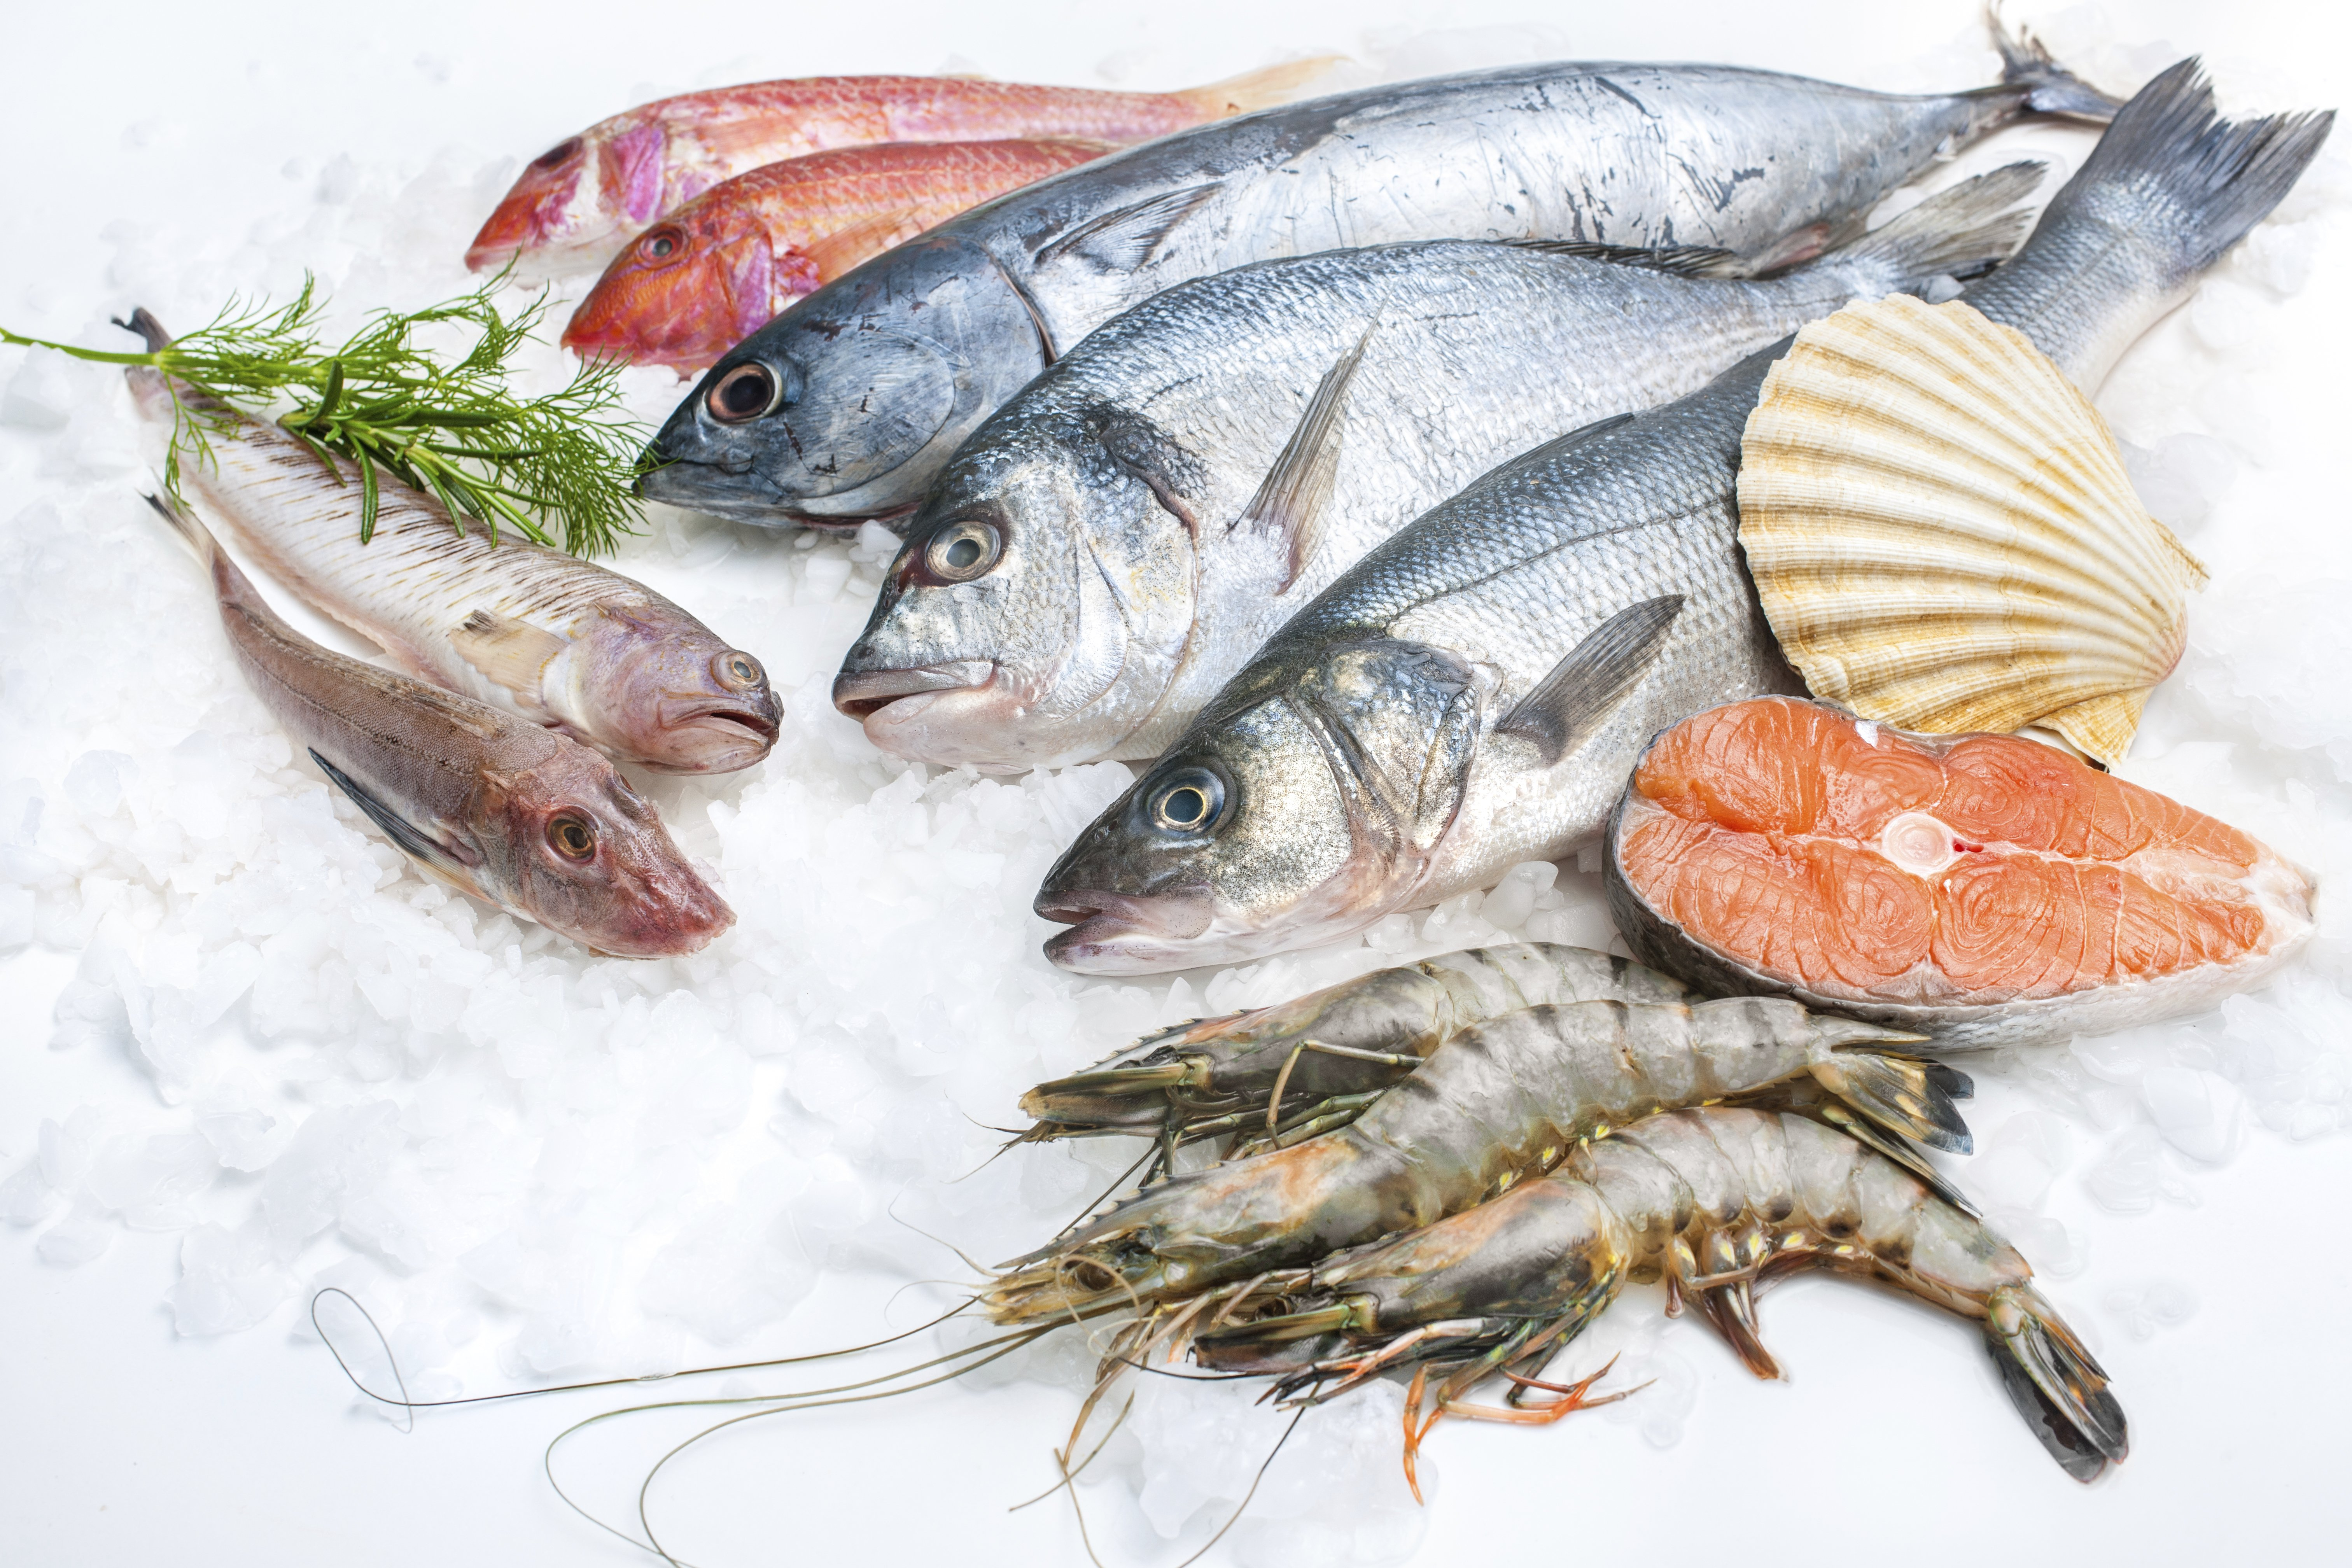 Seafood food fish sea ocean wallpaper 6048x4032 722640 for Fish and seafood